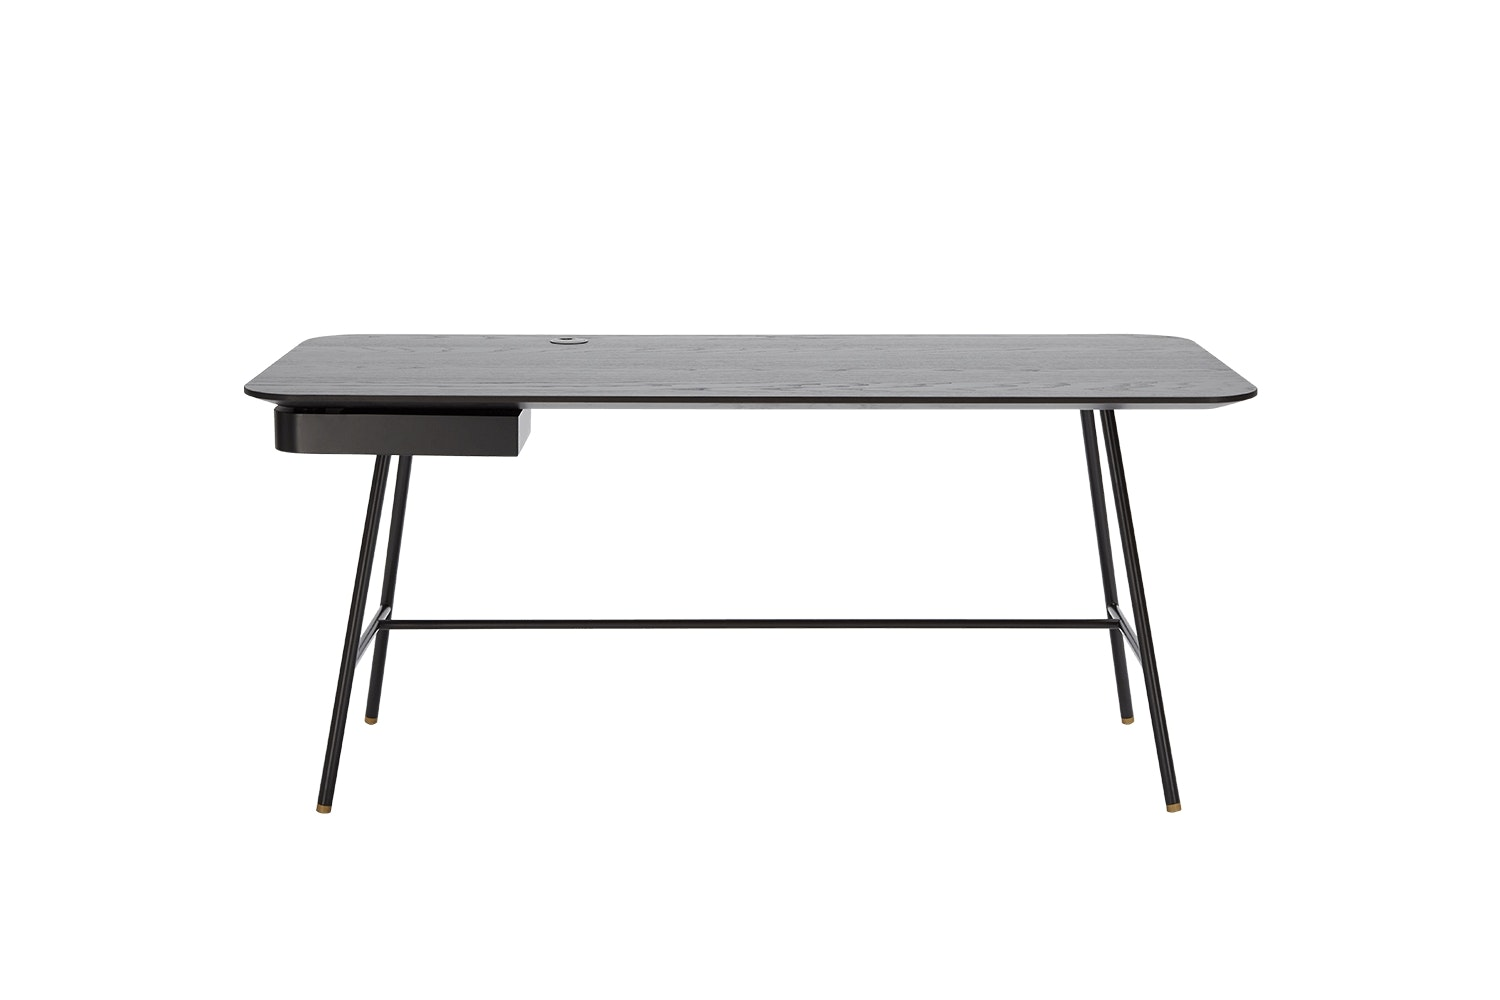 Holland Desk by Metrica for SP01